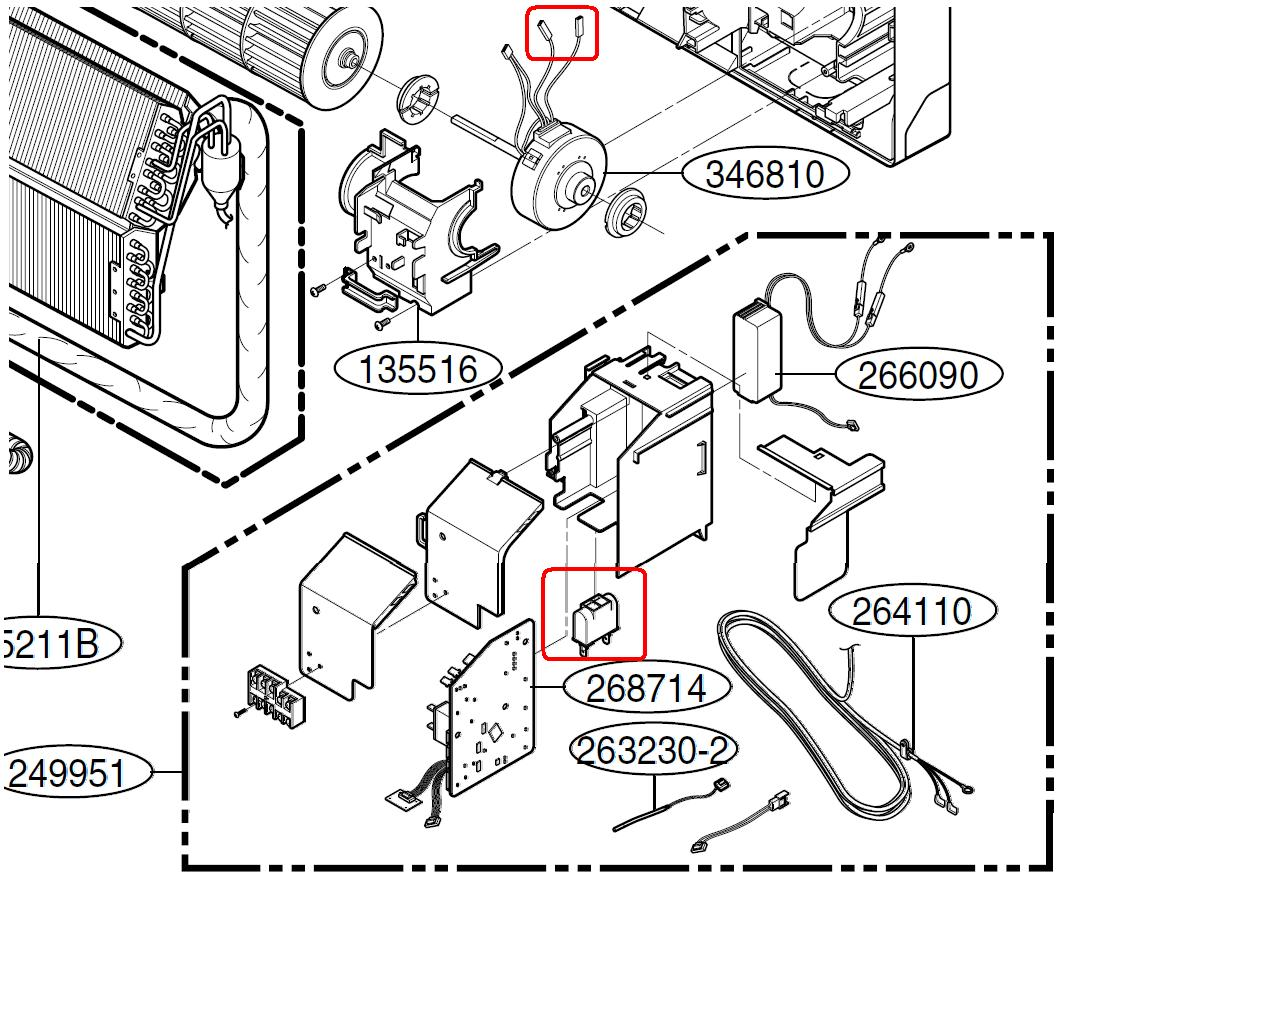 Honeywell Rth6450d Wiring Diagram Honeywell Thermostat